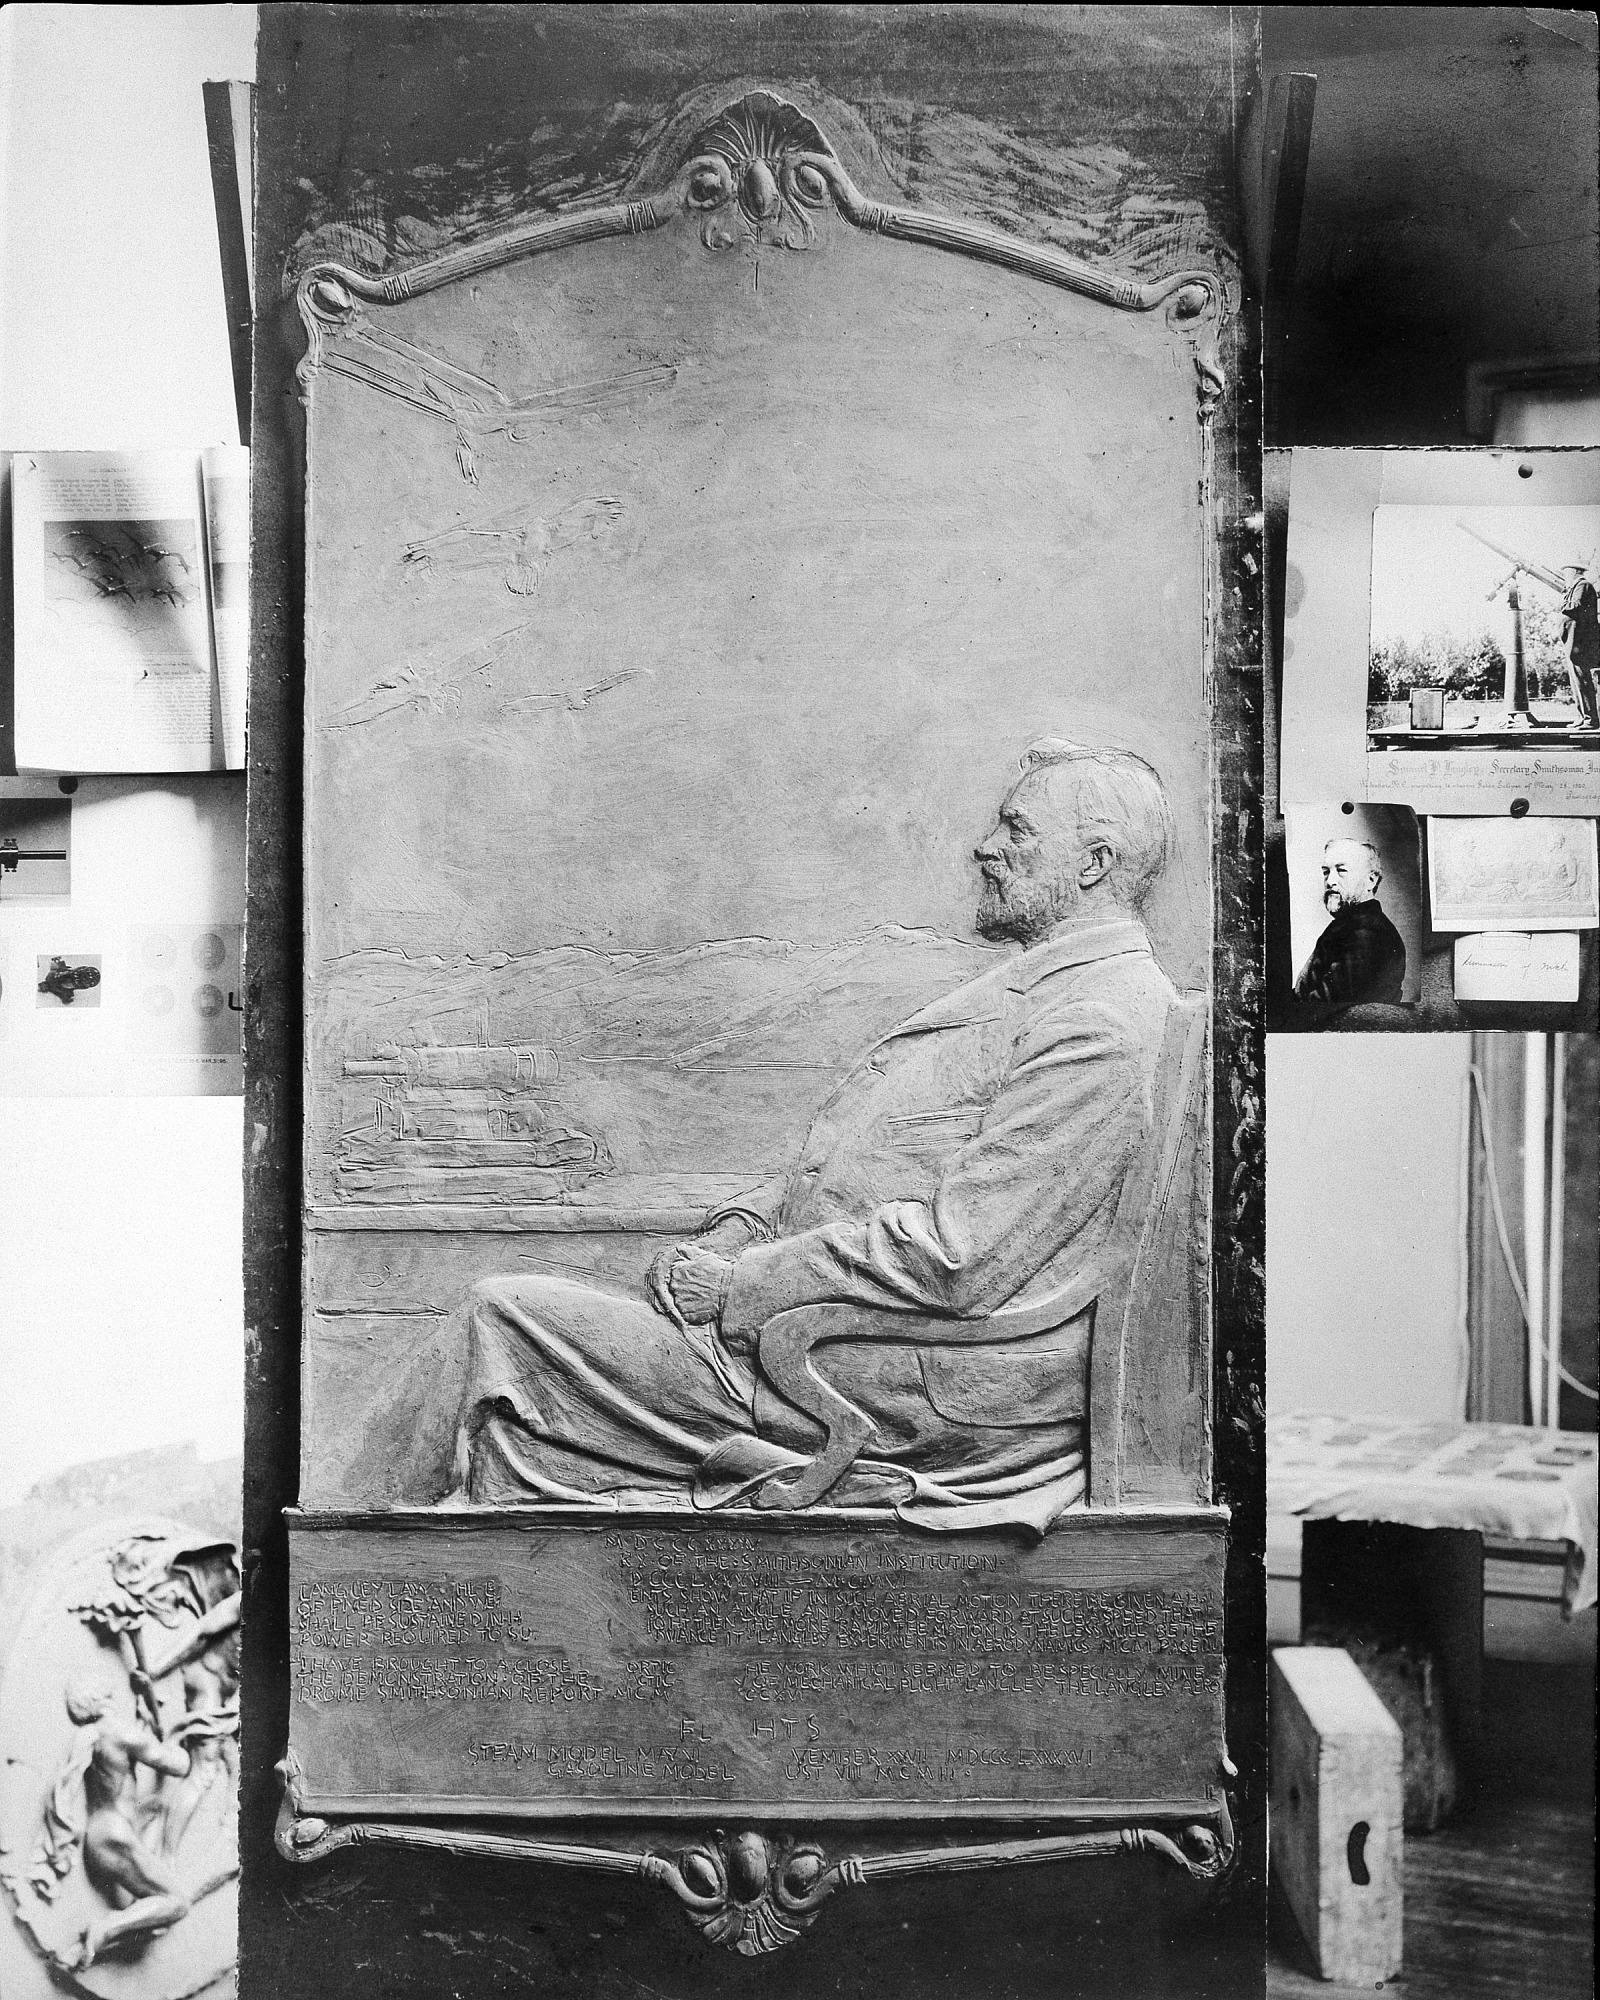 Langley Memorial Tablet, by Unknown, 1908, Smithsonian Archives - History Div, 82-3199.